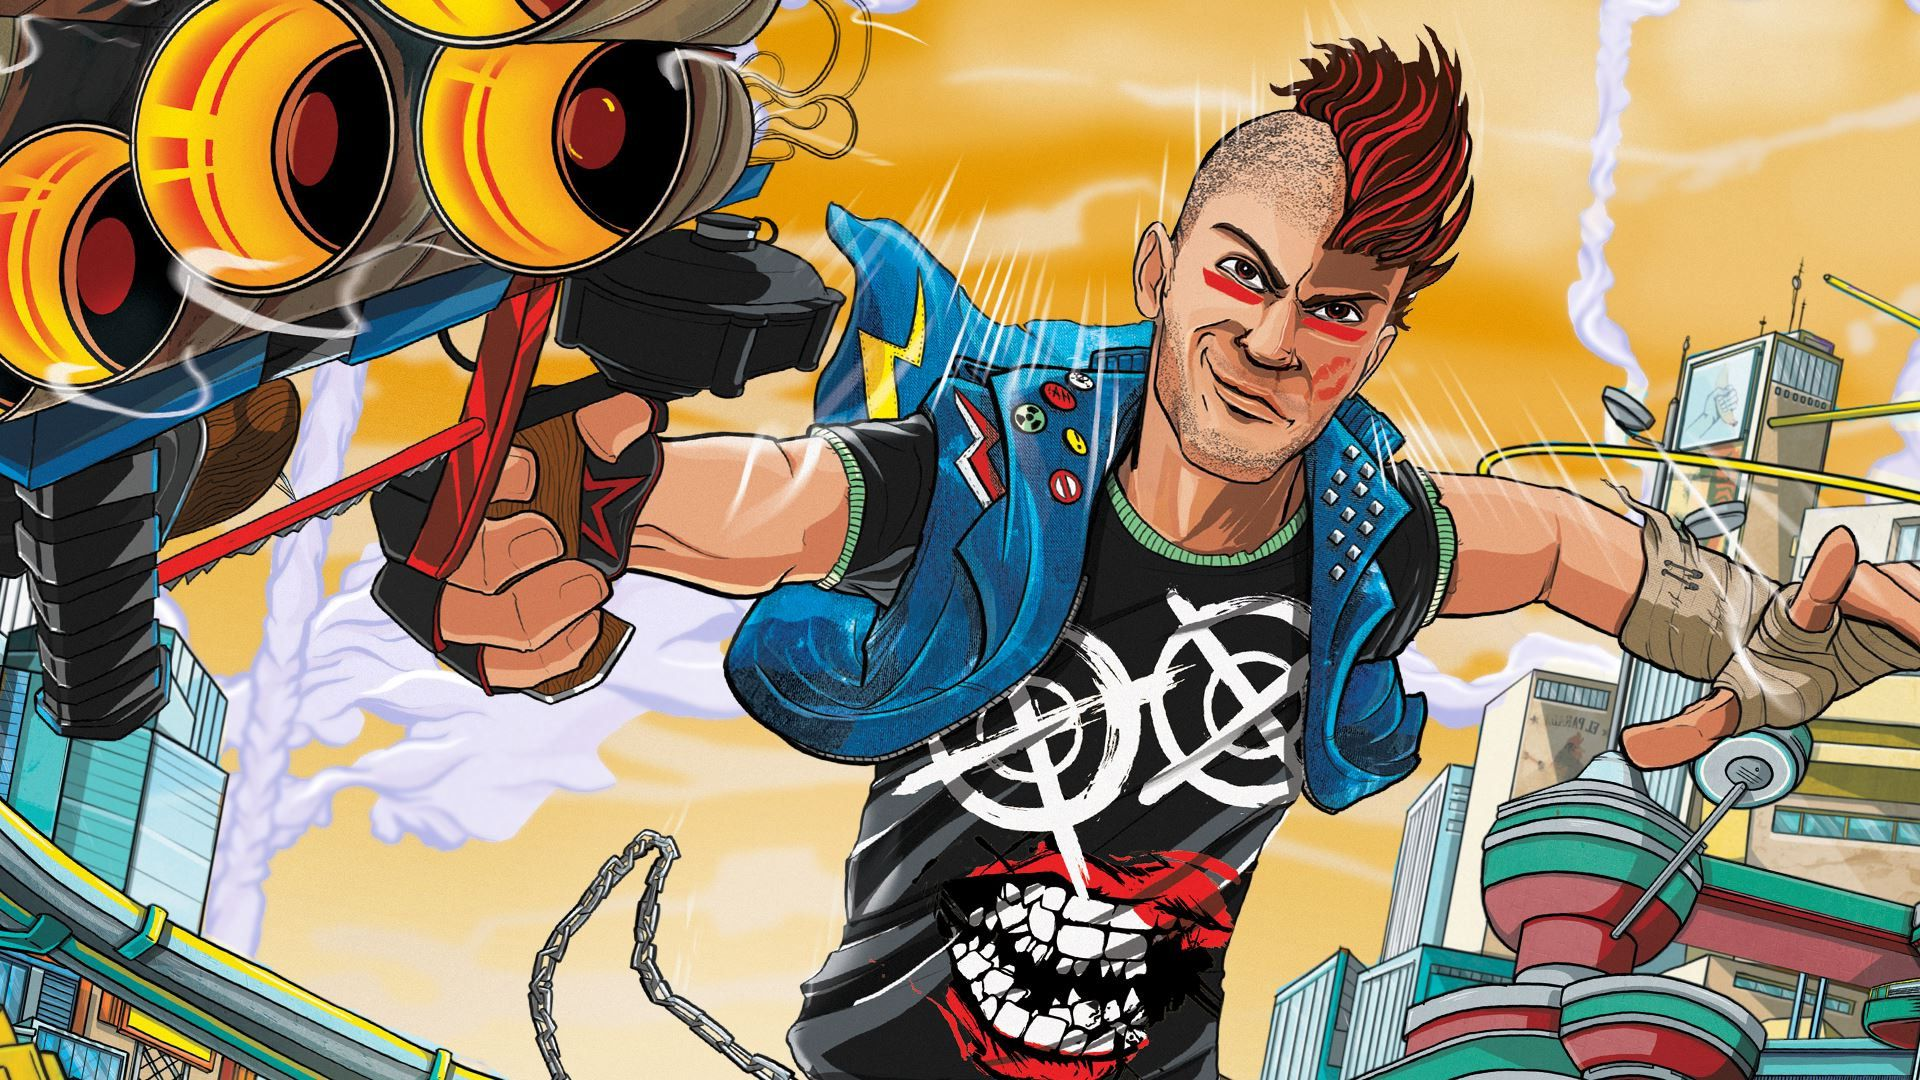 sunset-overdrive-xbox-one-cd-key-satin-al-durmaplay.jpg